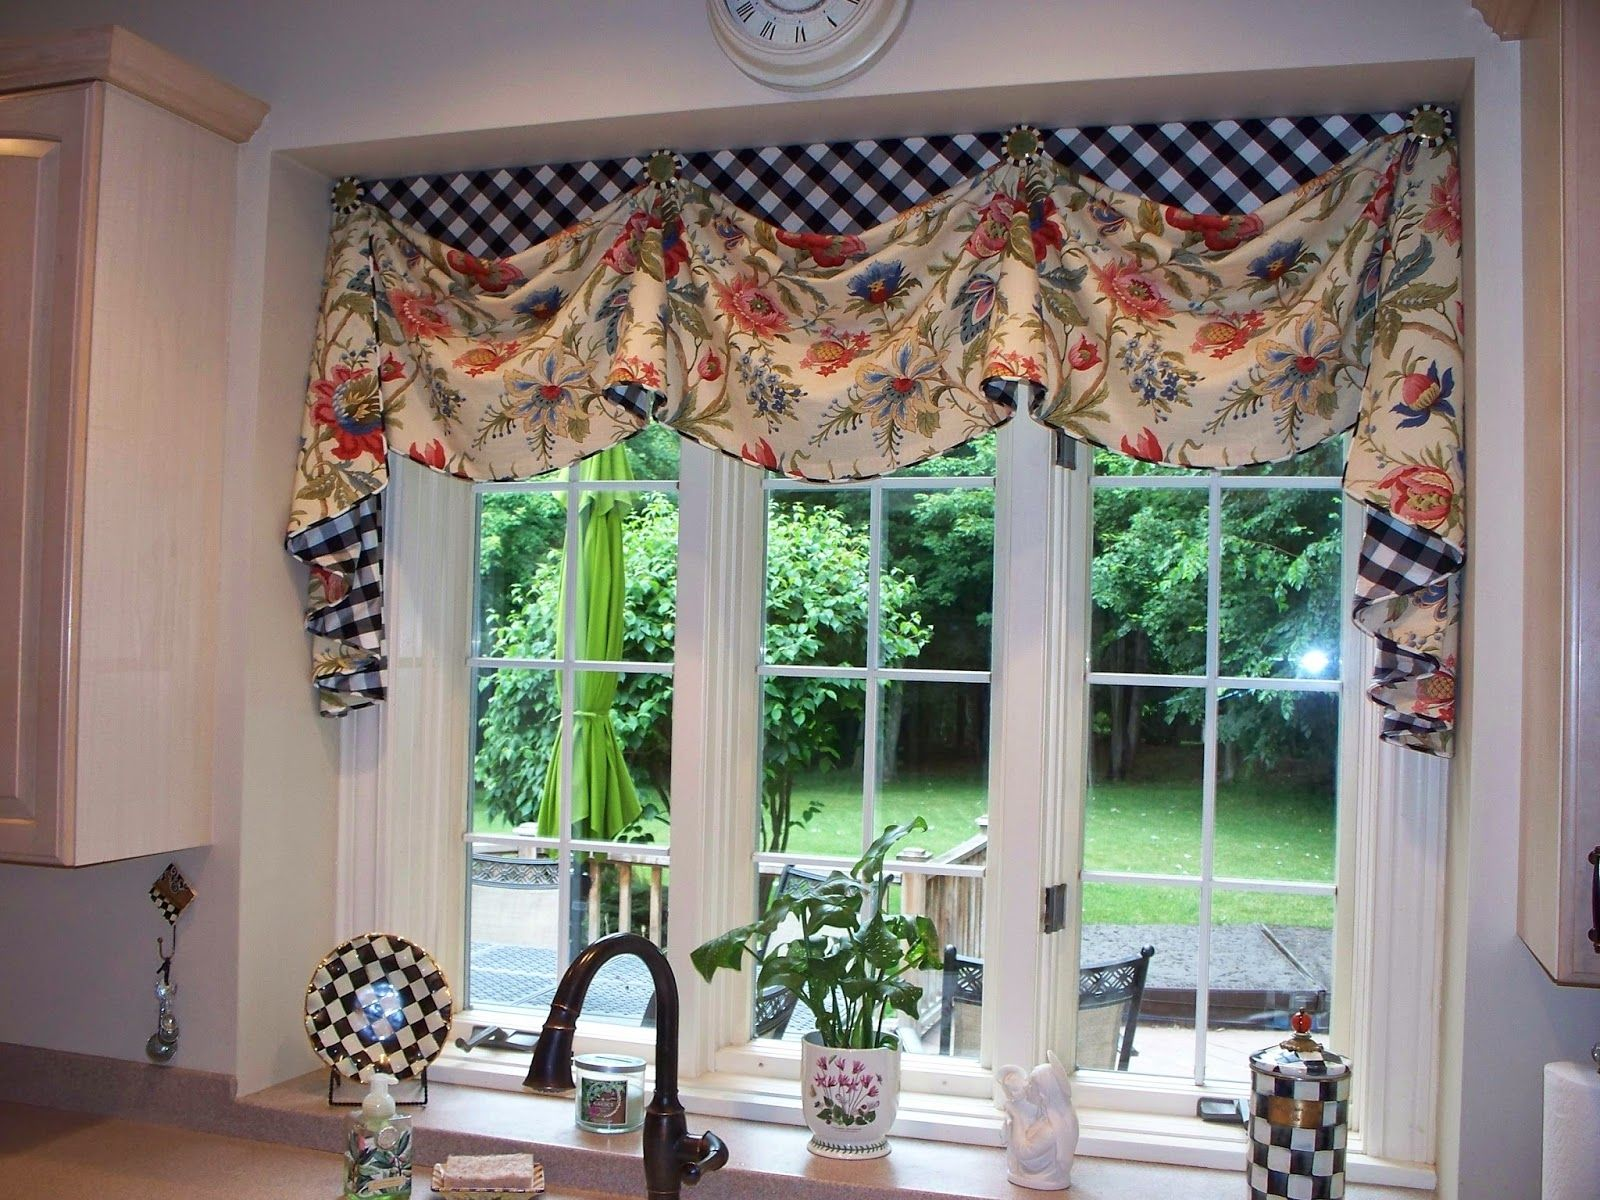 Do You Have Clients Who Love The Distinctive Designs Of